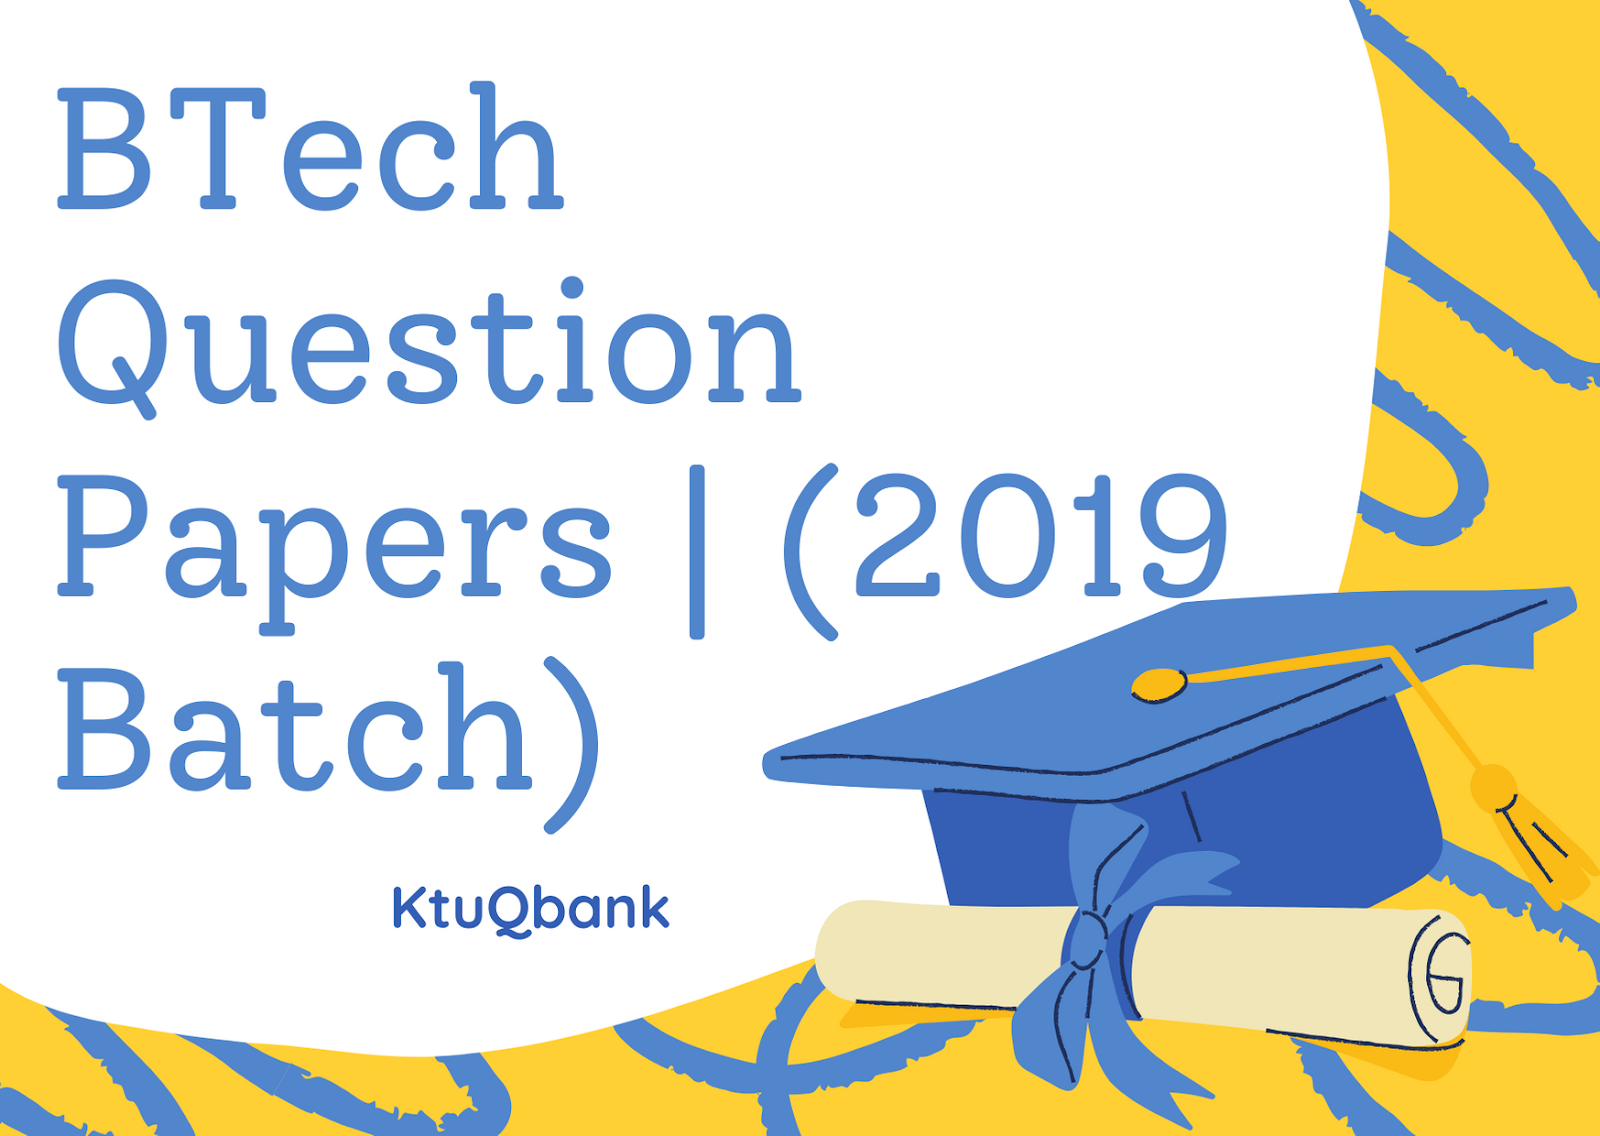 BTech Question Papers | S1 | S2 | S3 | S4 | S5 | S6 | S7 | S8 | (2019 Batch)